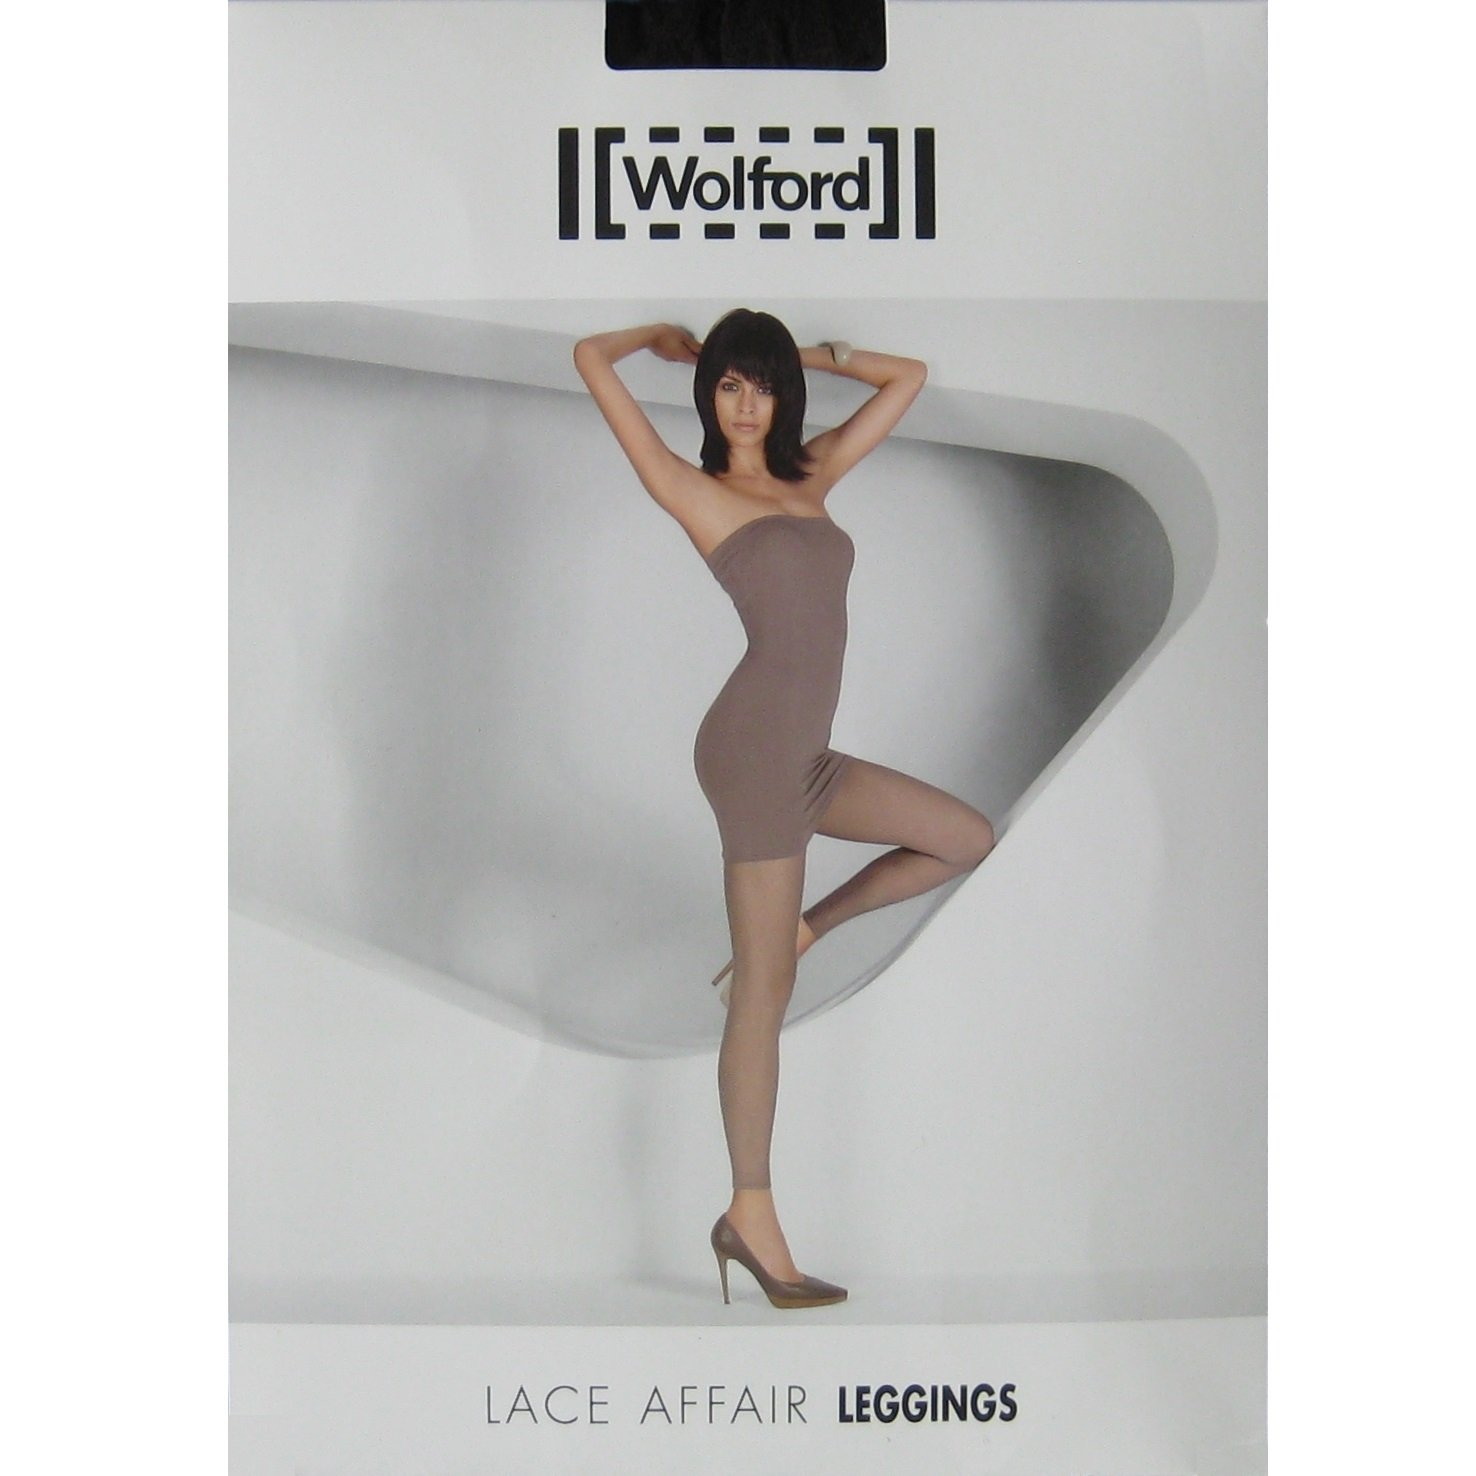 NIP Wolford Lace Affair Leggings #19054 - Mocca (Chocolate Brown) - M